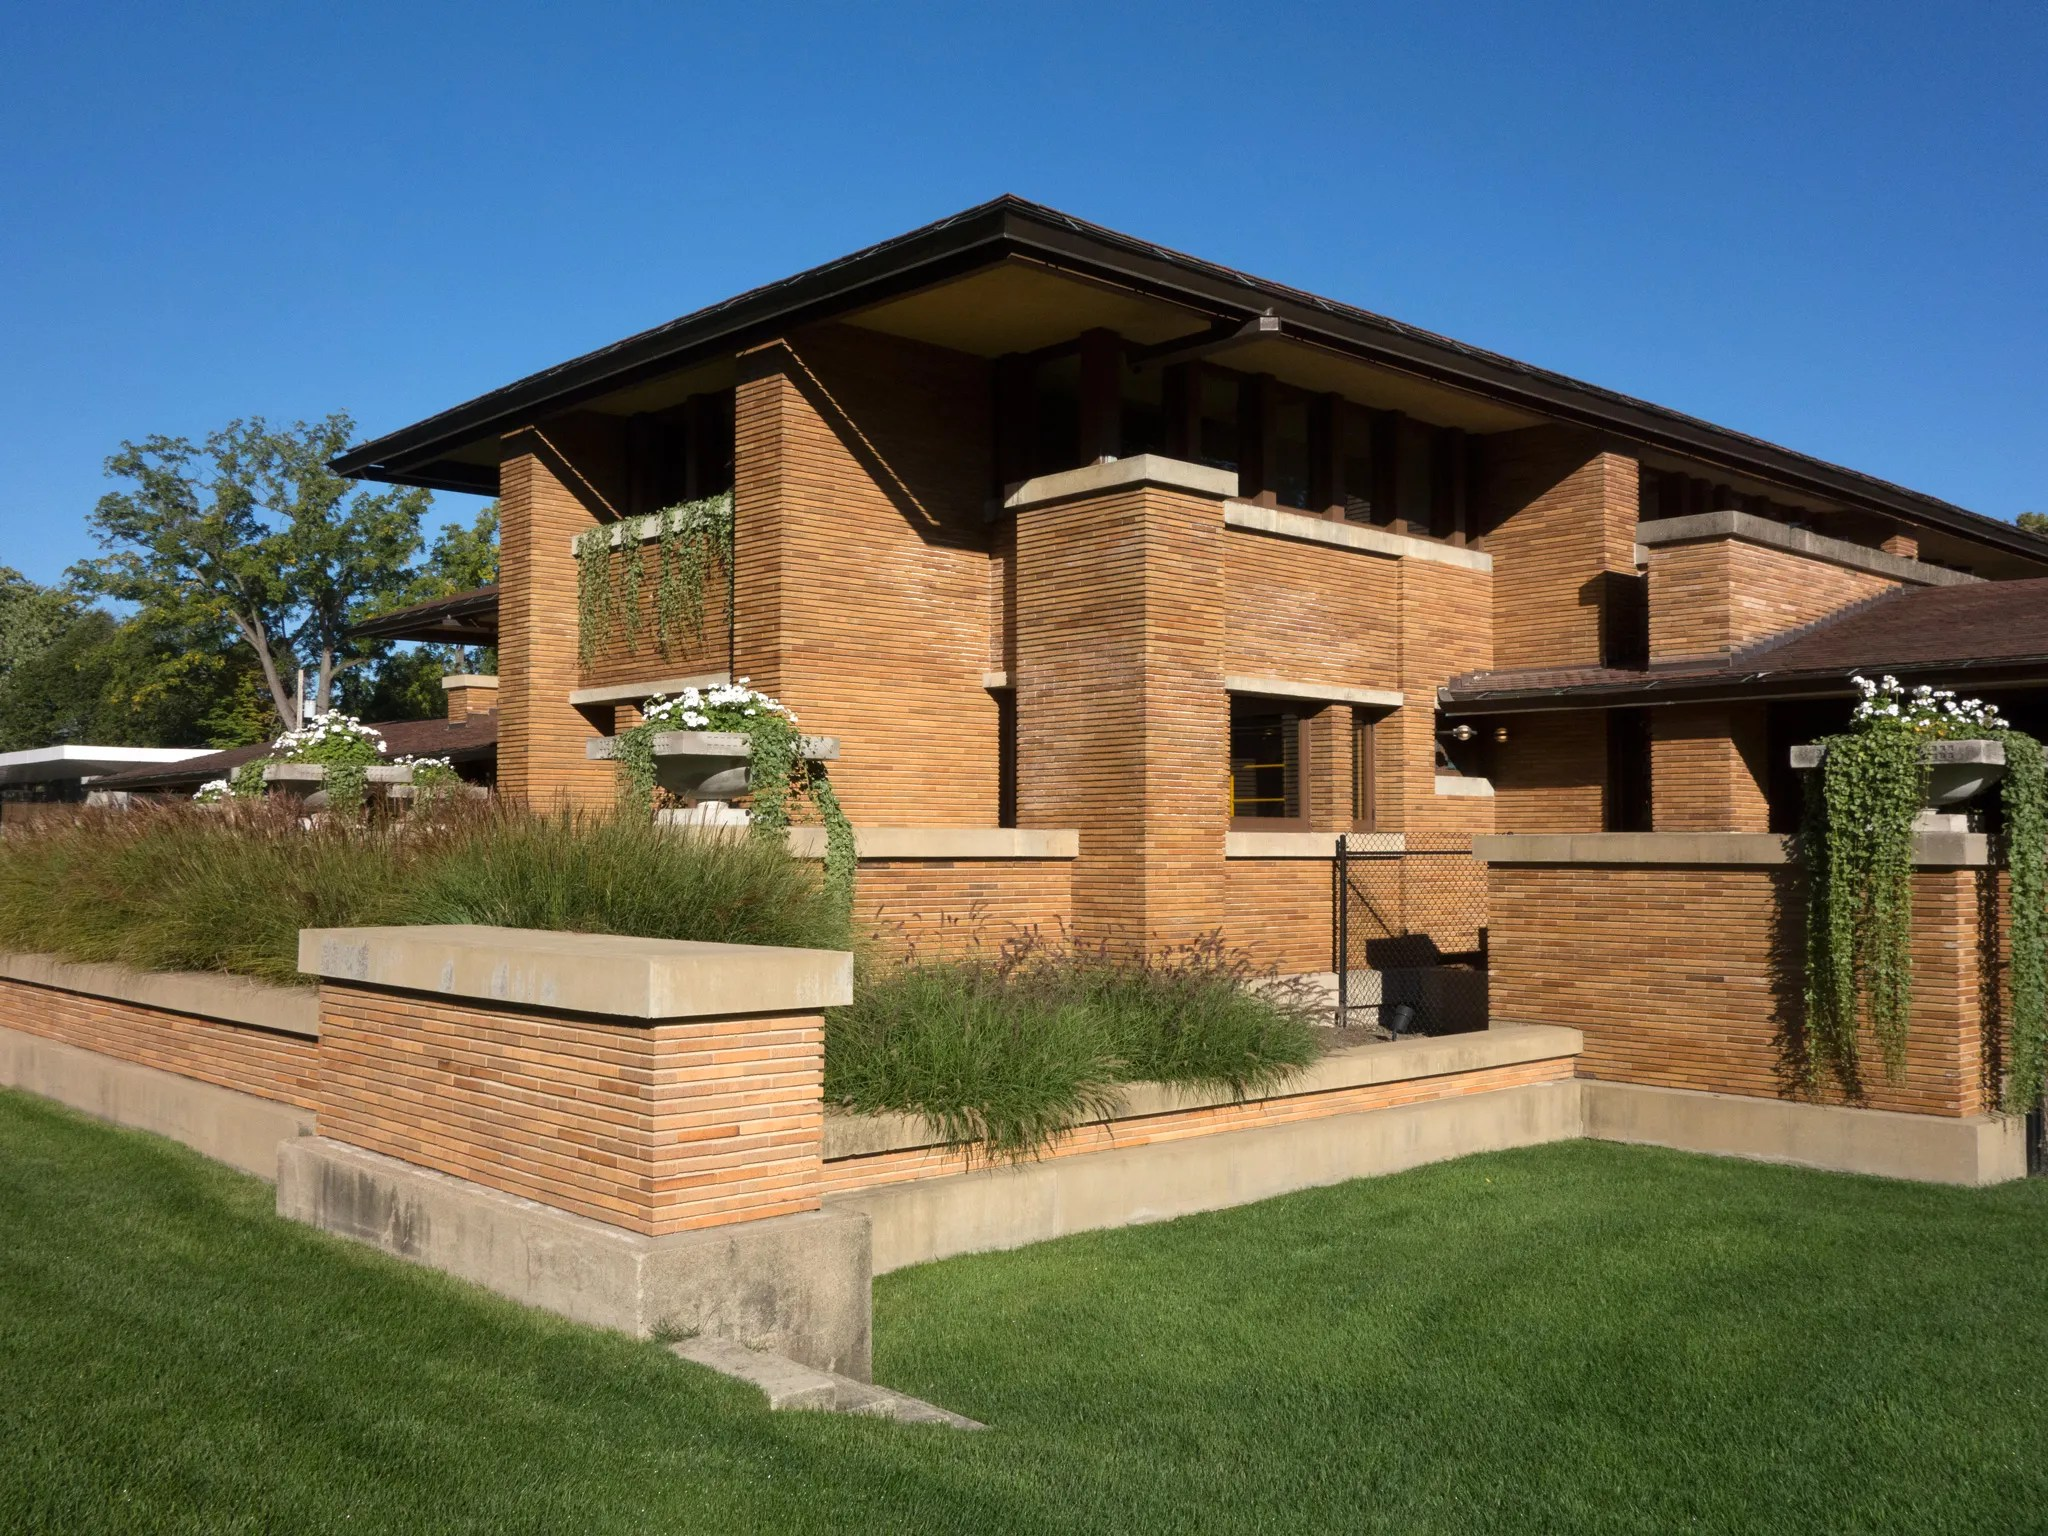 Landscape Architect Nashville The Best City To Experience Frank Lloyd Wright